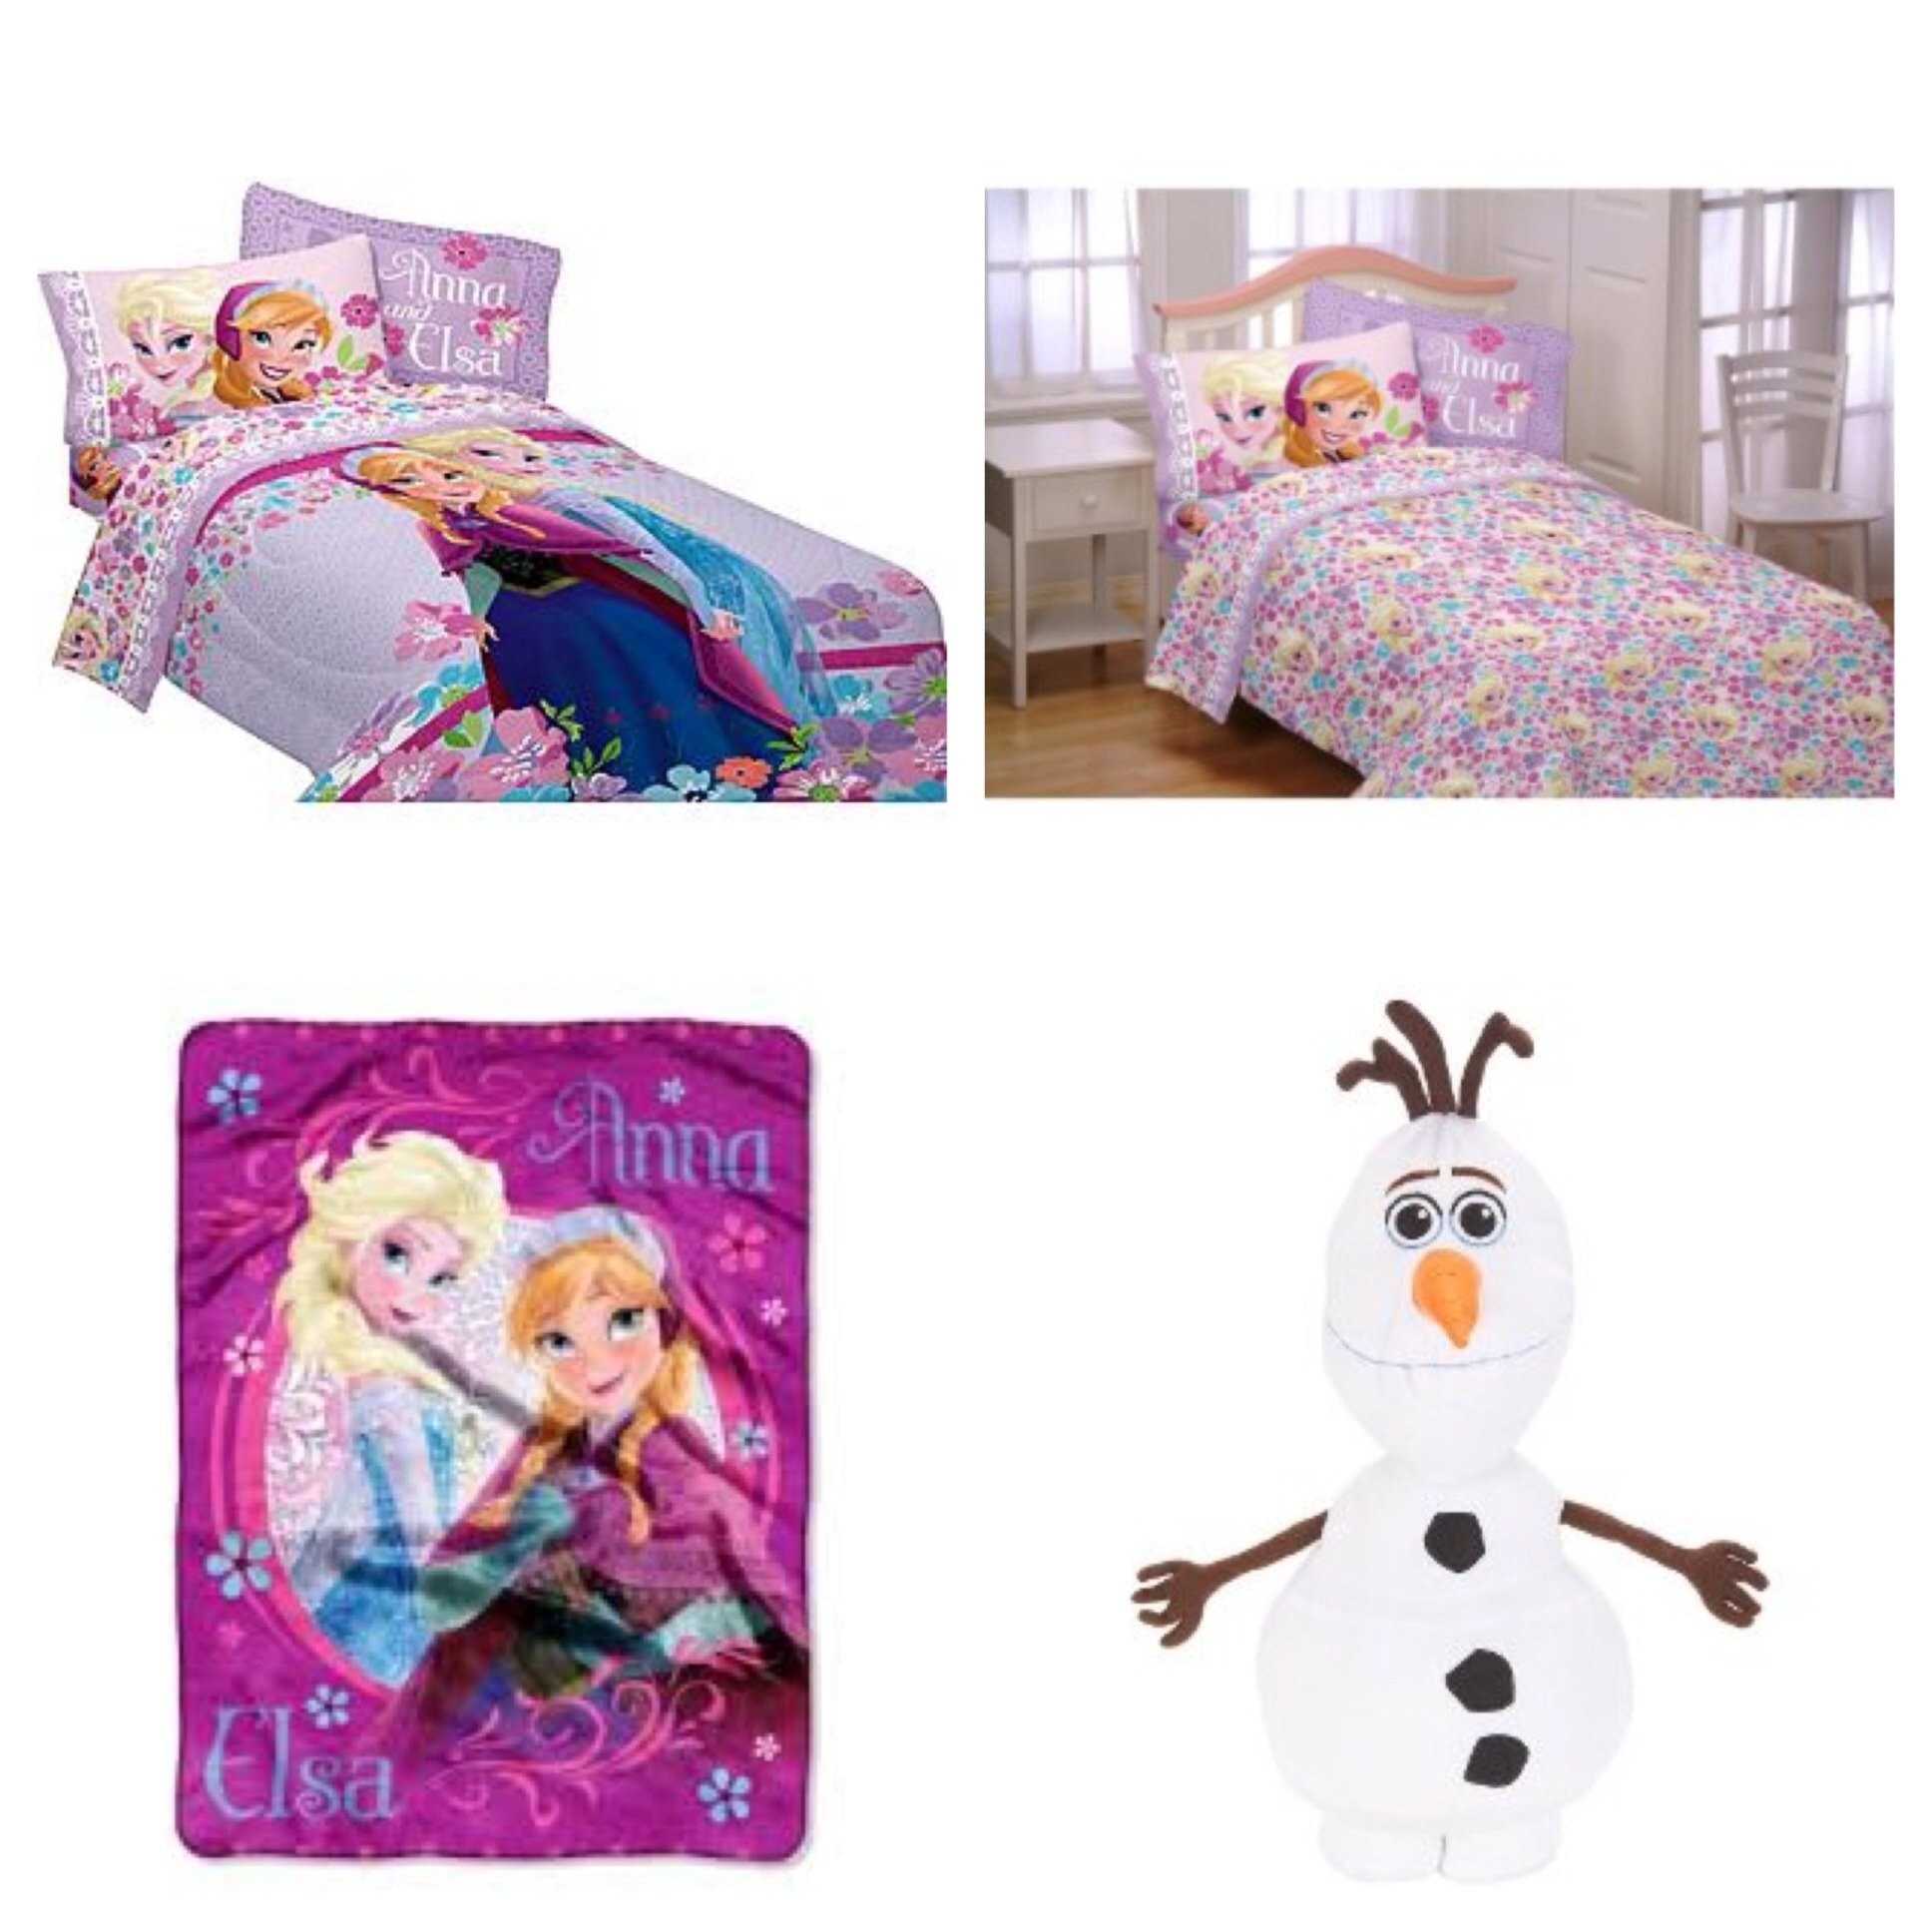 Disney Frozen Love Blooms Complete 6 Piece Twin Bed in a Bag - Comforter, 3 Piece Sheet Set, Loving Sisters Throw, Olaf Cuddle Pillow